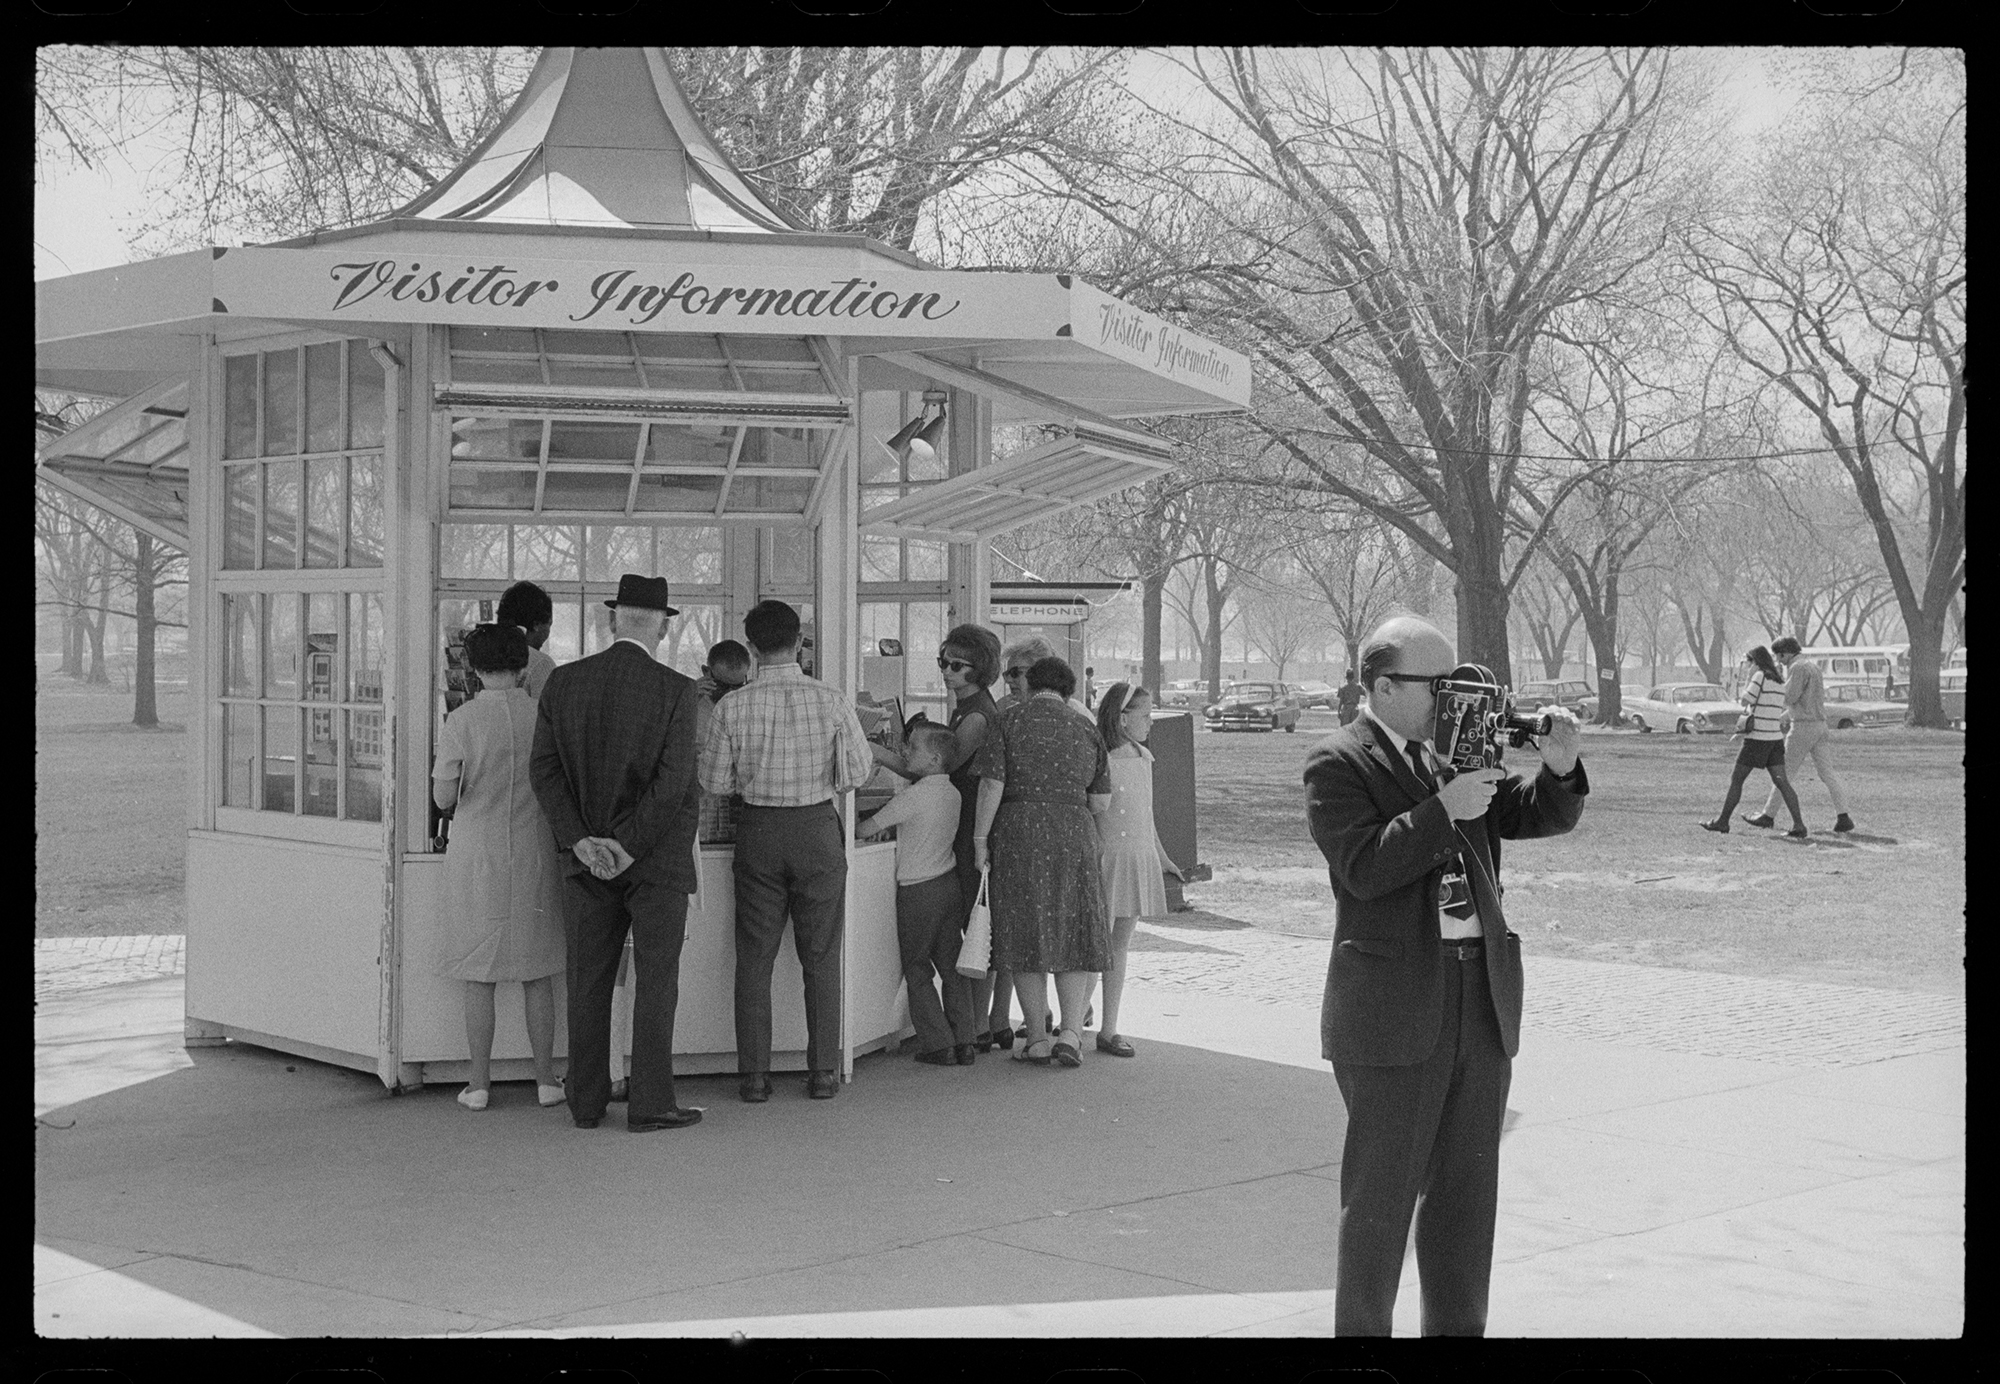 a group of people approach an information booth